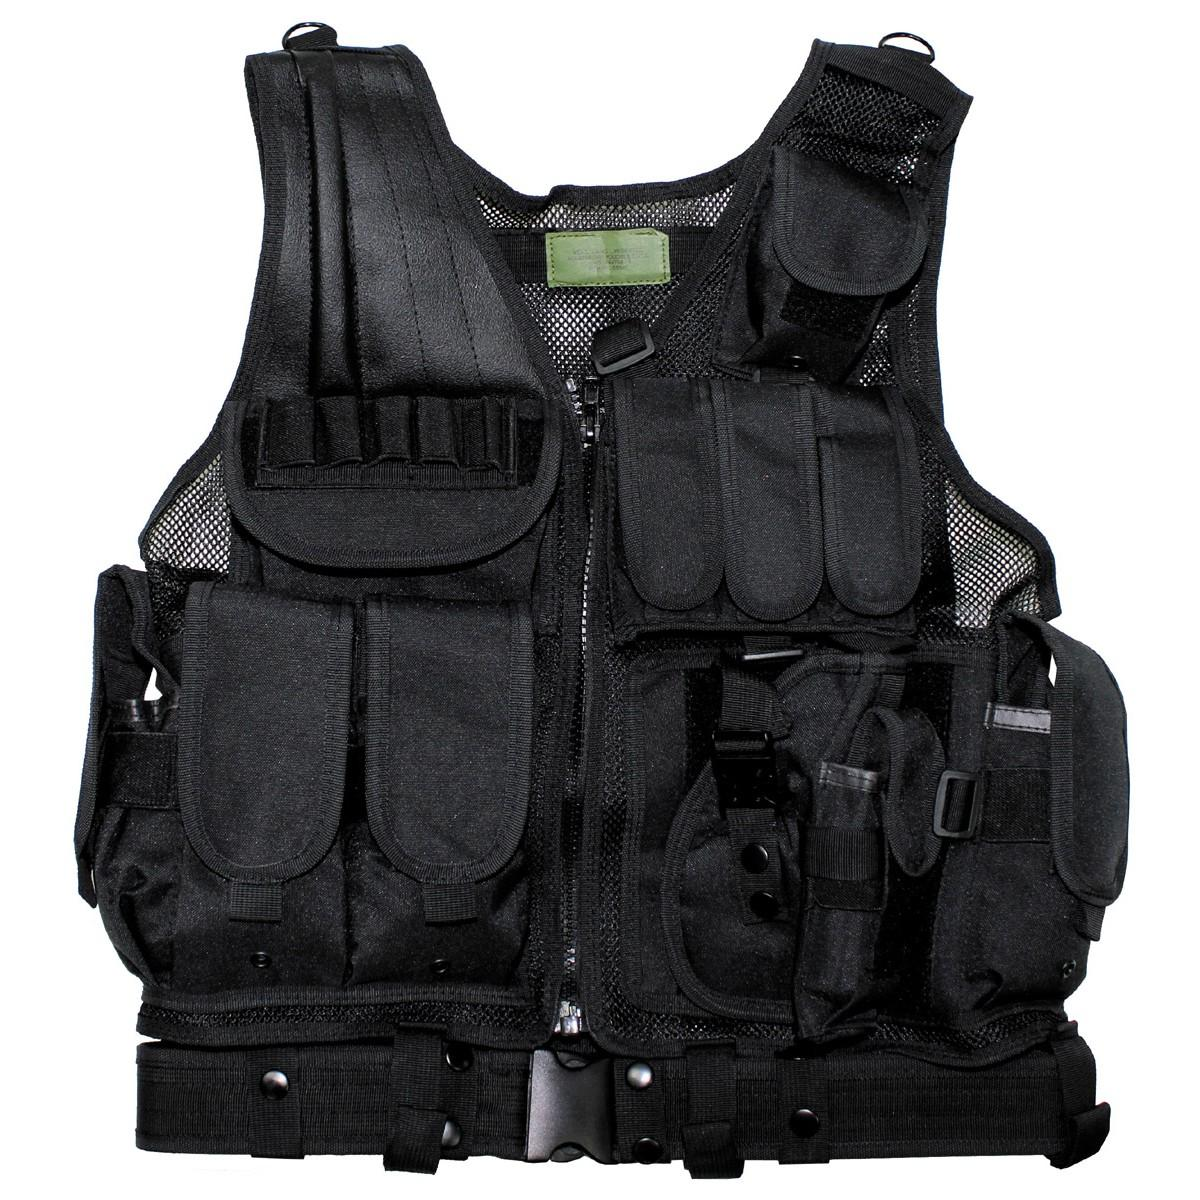 USMC  Tactical Combat Assault Military Battle Vest with Belt - Black